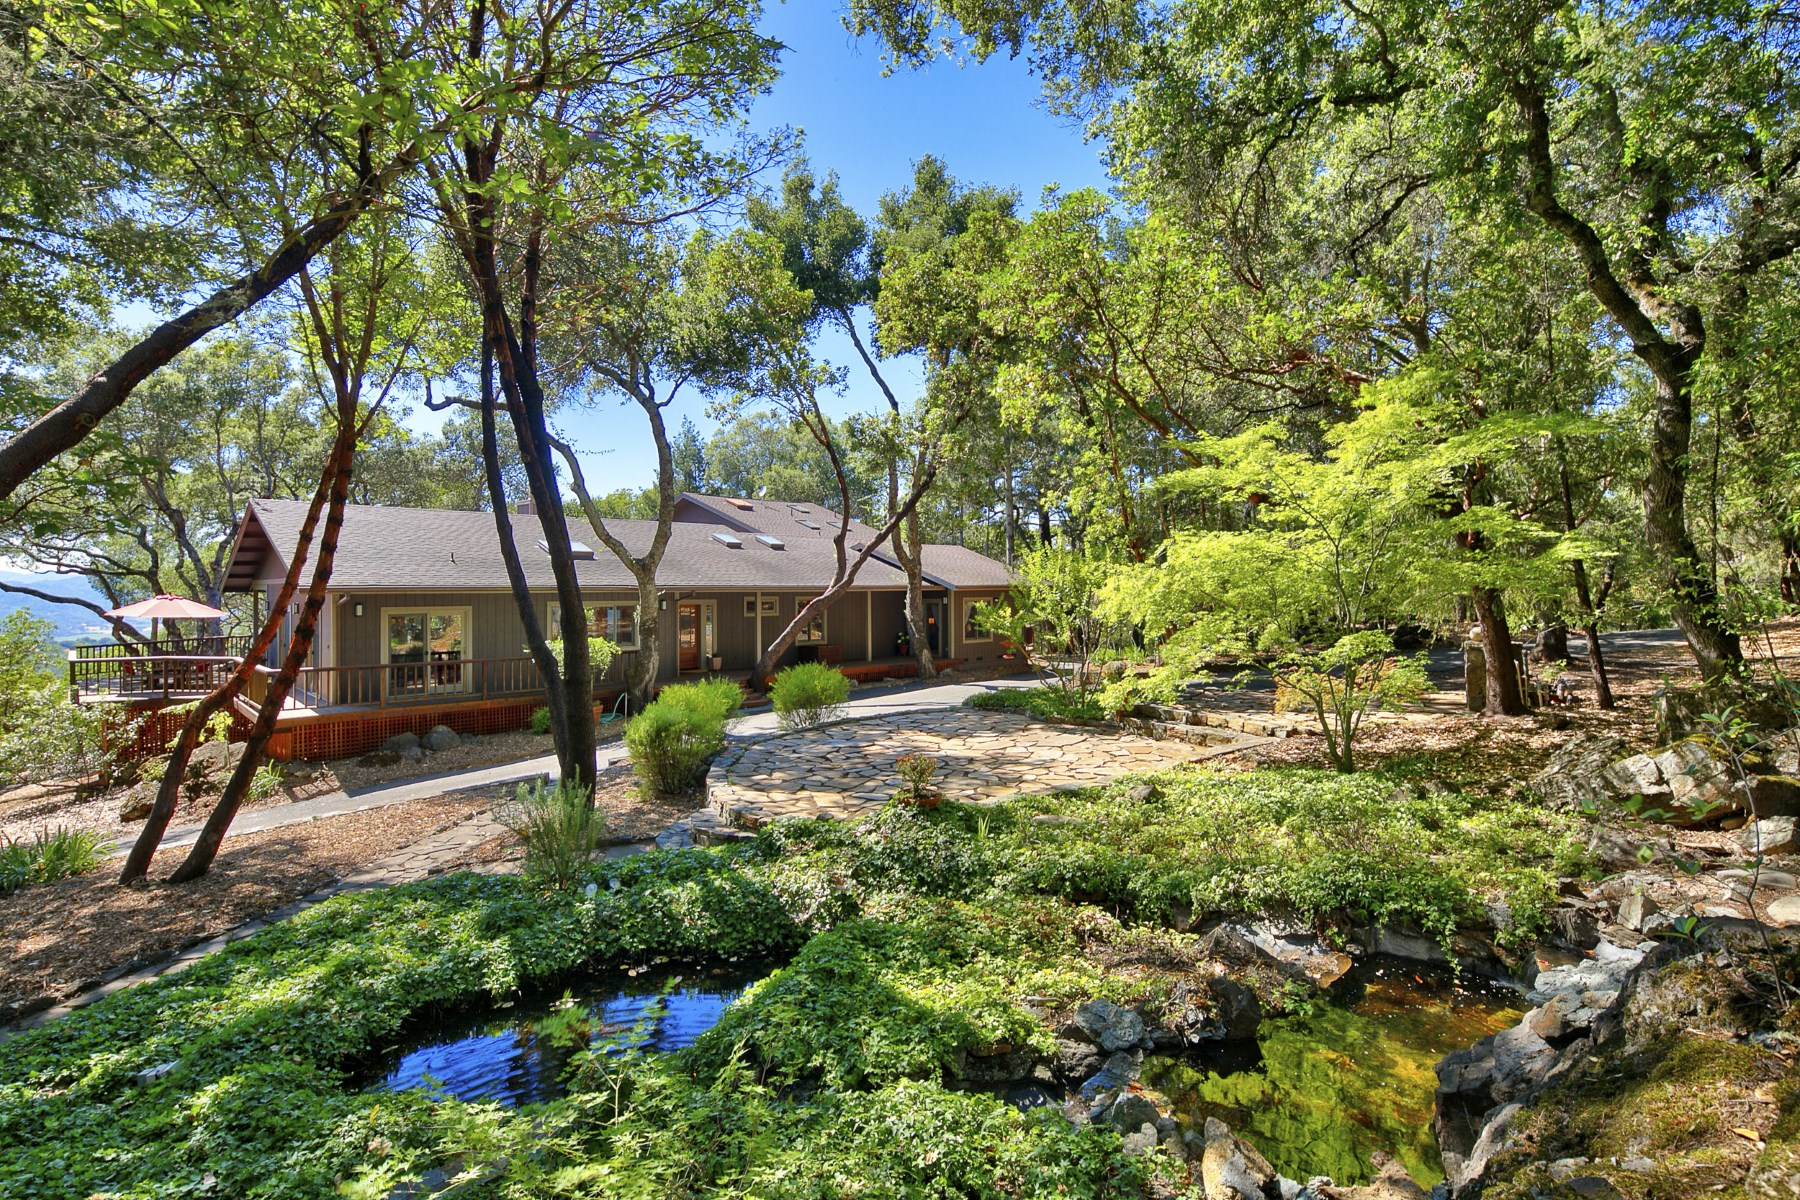 Single Family Home for Sale at Ridge Top Compound in Geyserville 3403 Ridge Oaks Road Geyserville, California 95441 United States